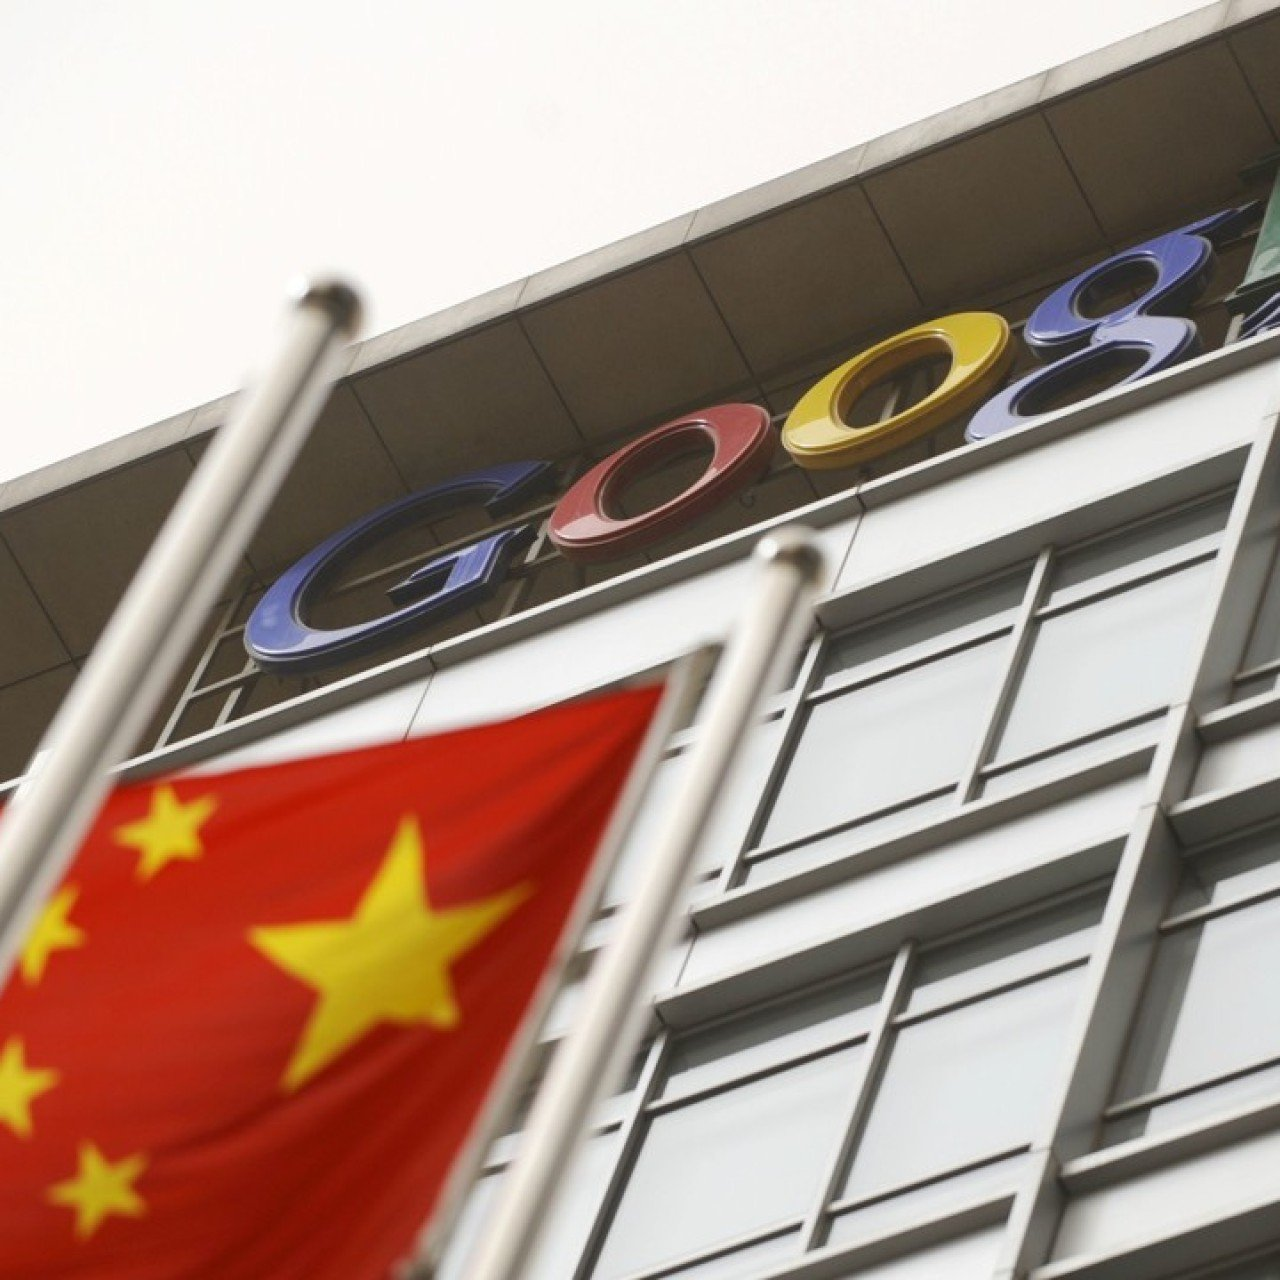 Google is in talks with Tencent and others to bring cloud